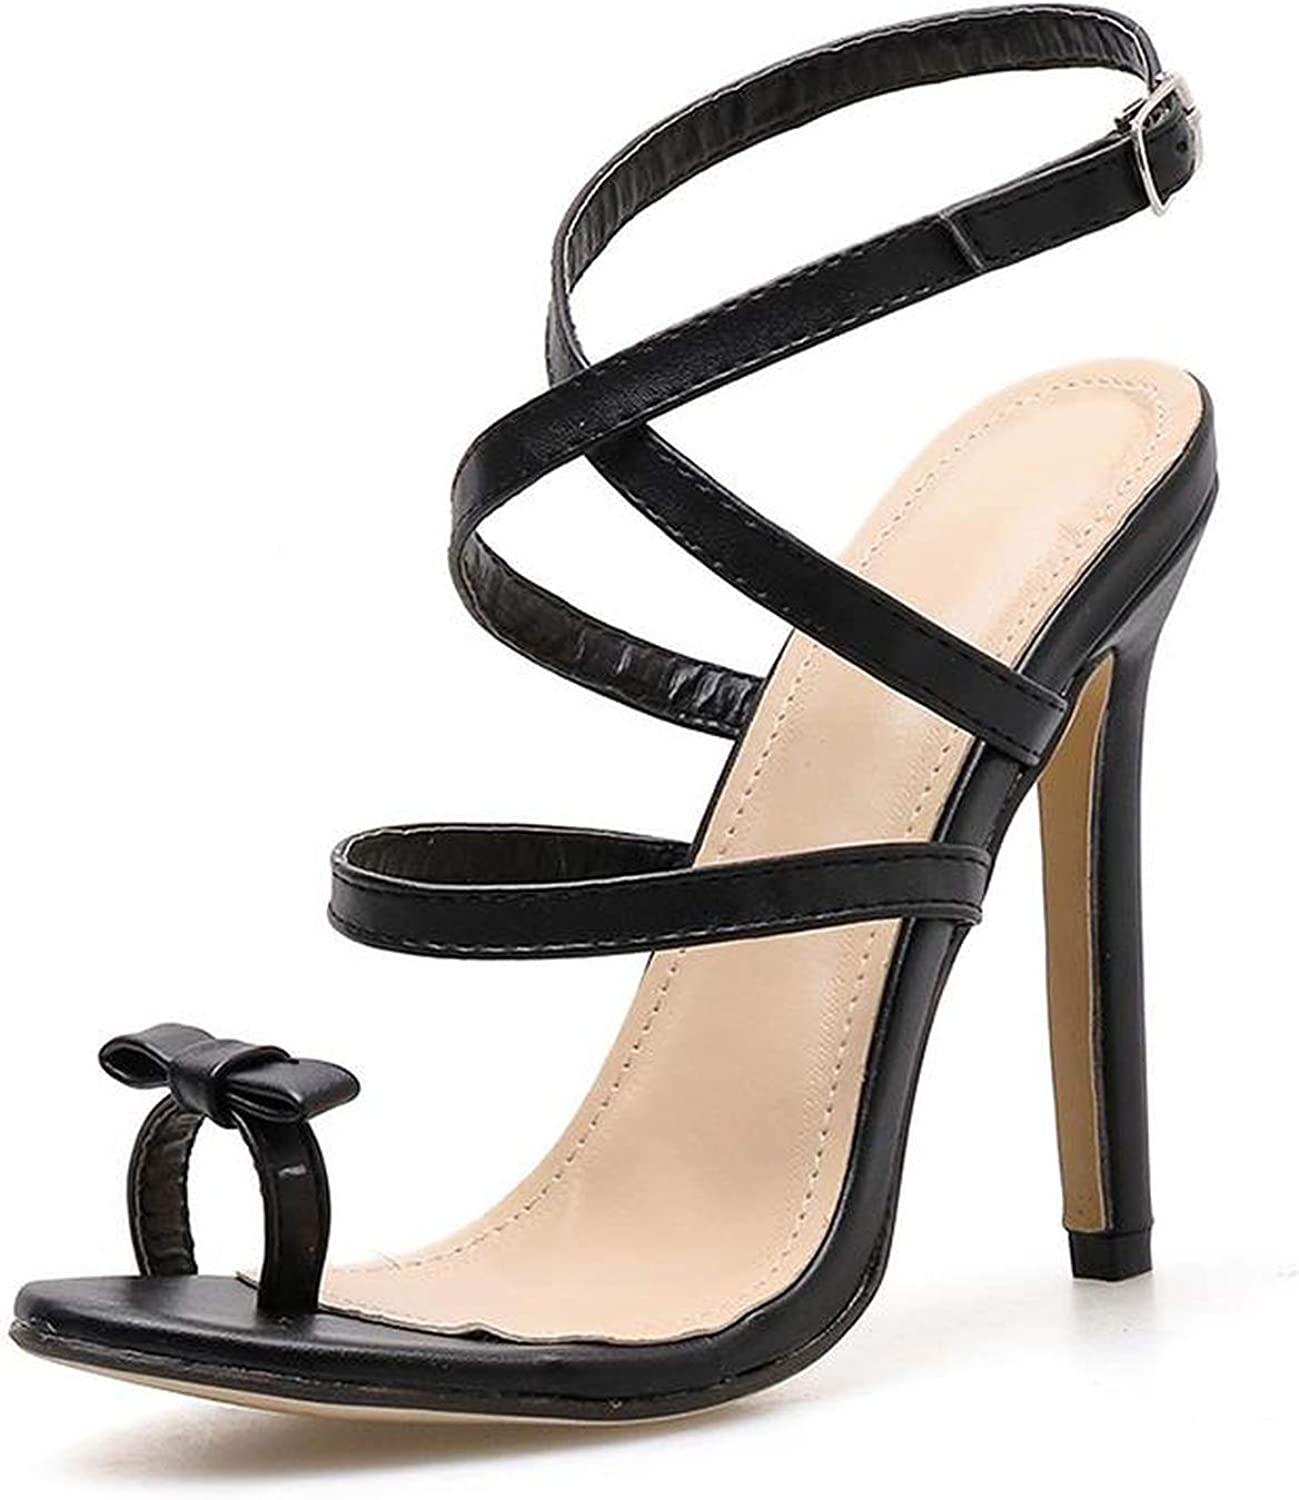 April With You Summer Women High Heel shoes Strap Ankle Wrap OL Stiletto Sexy Pump Party Office & Career shoes